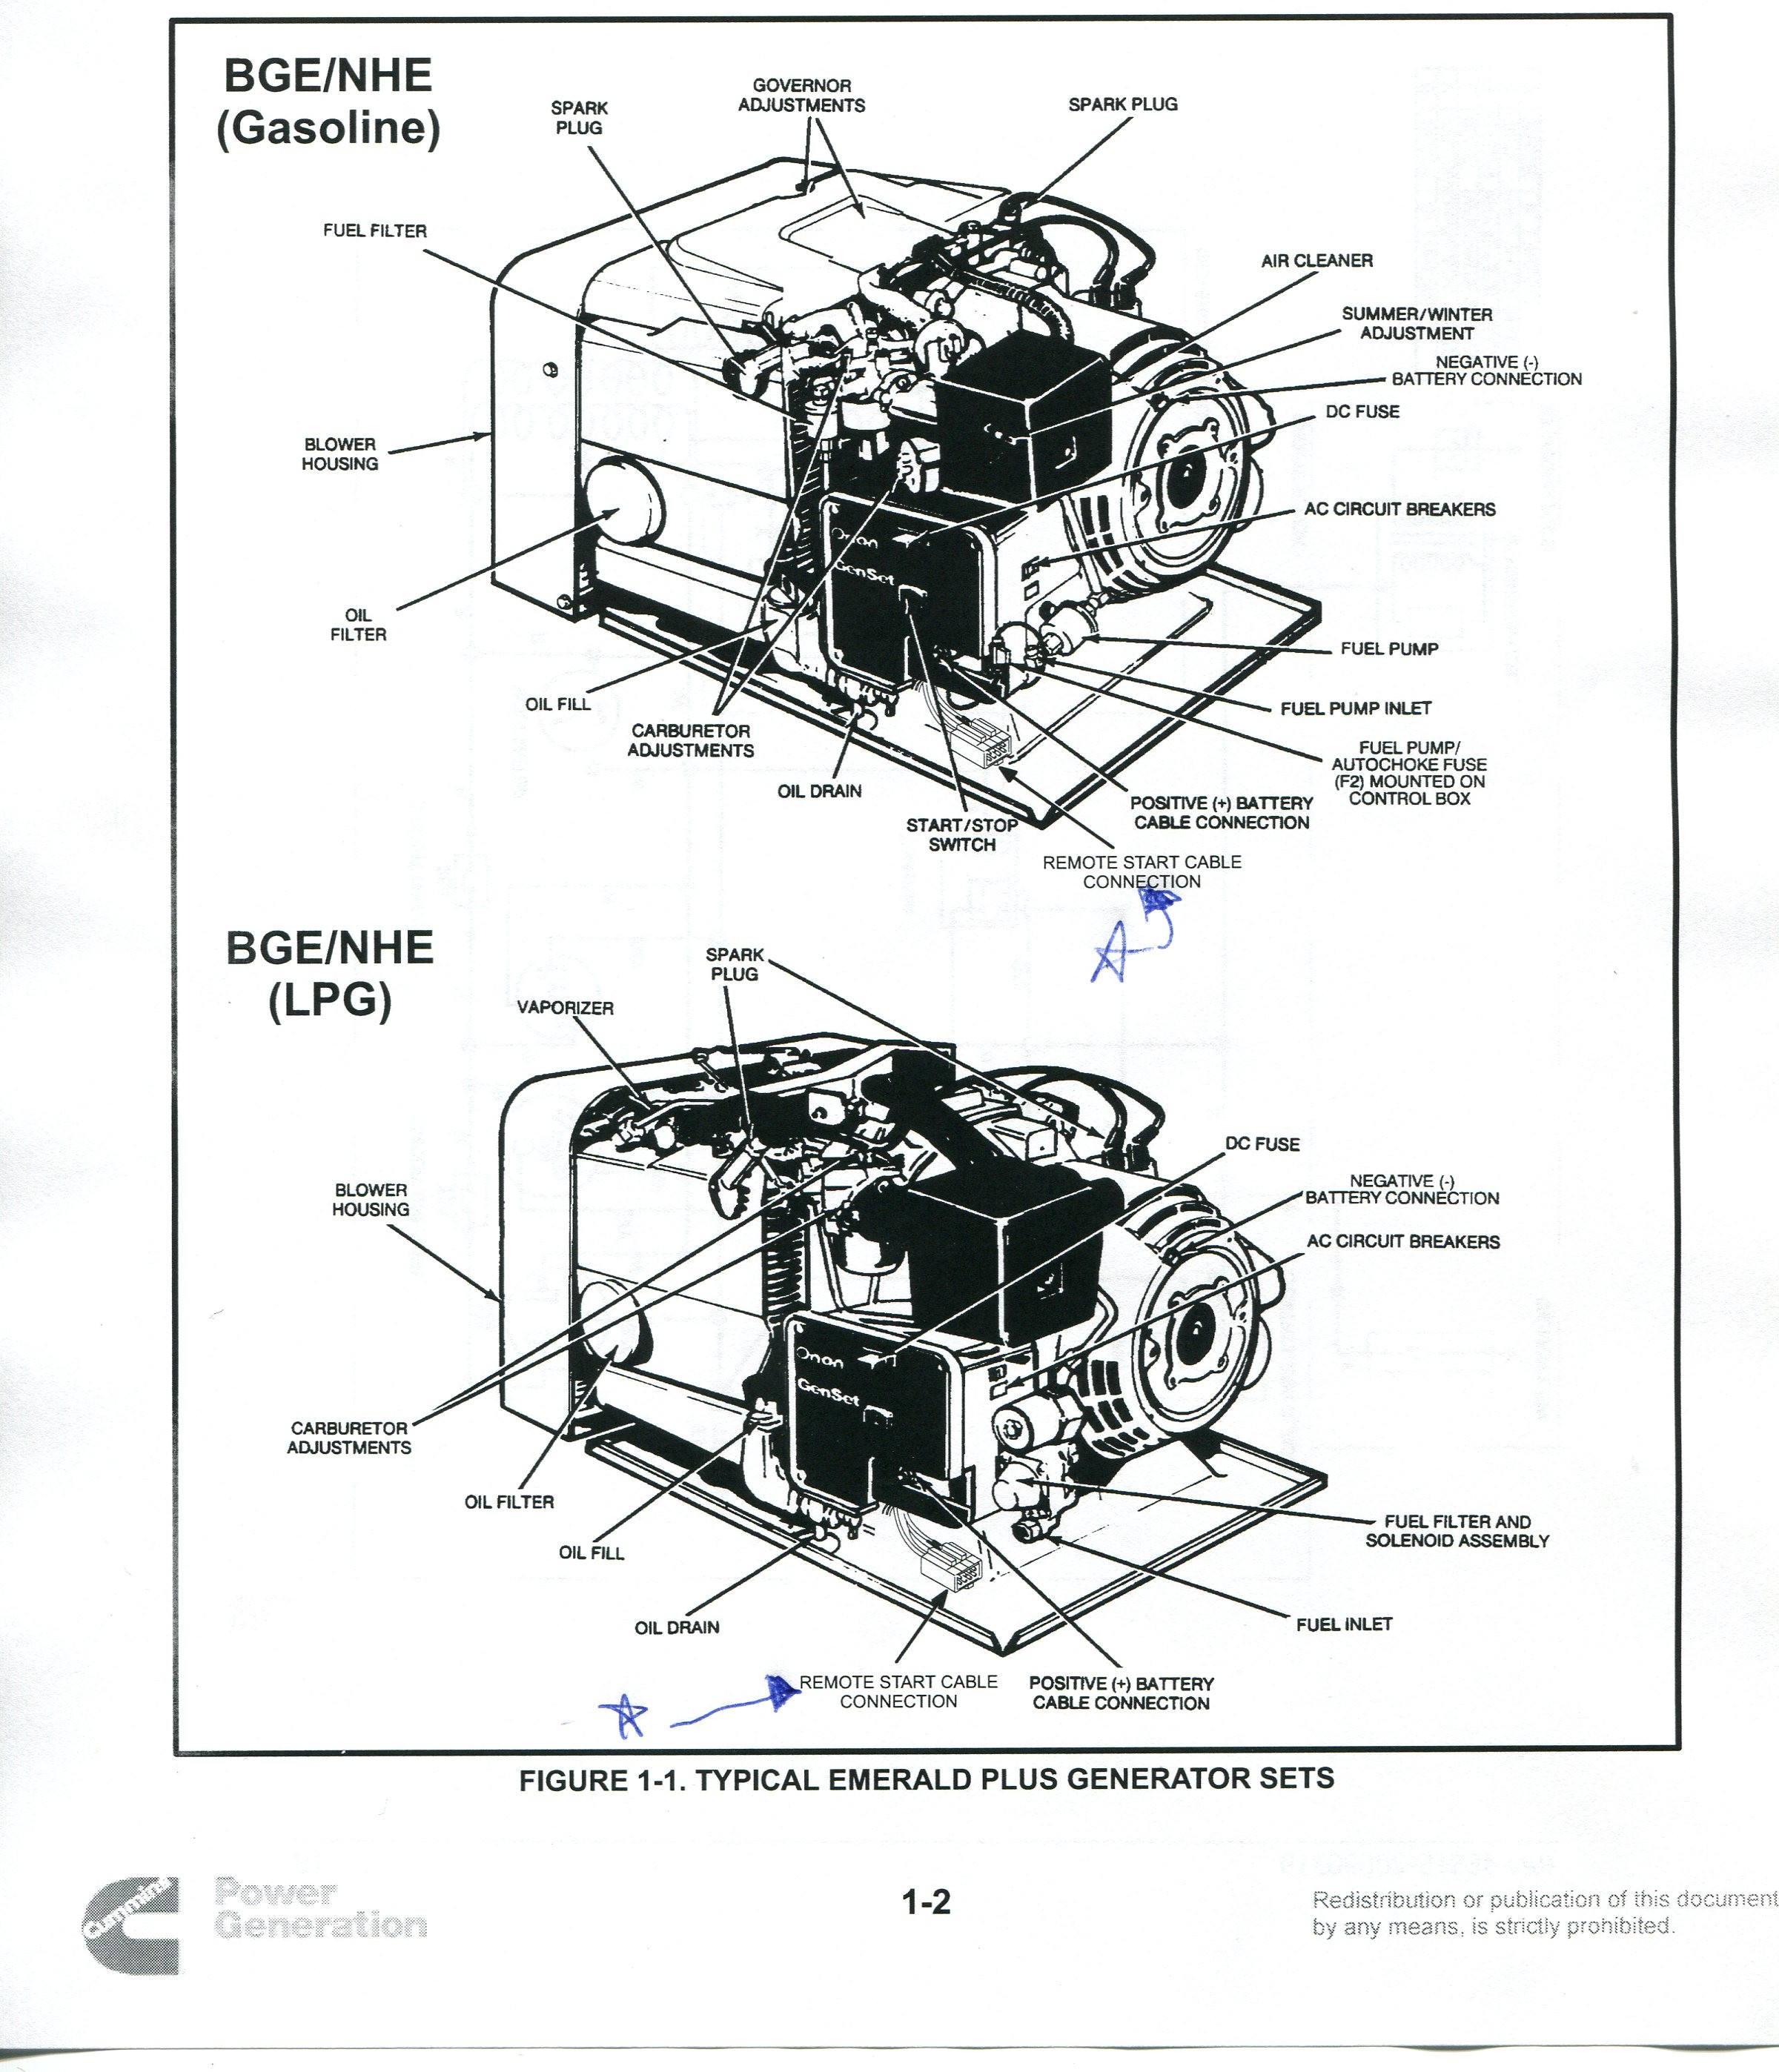 Onan Engine Parts Diagram Diagram An 4000 Generator Parts Diagram Of Onan Engine Parts Diagram